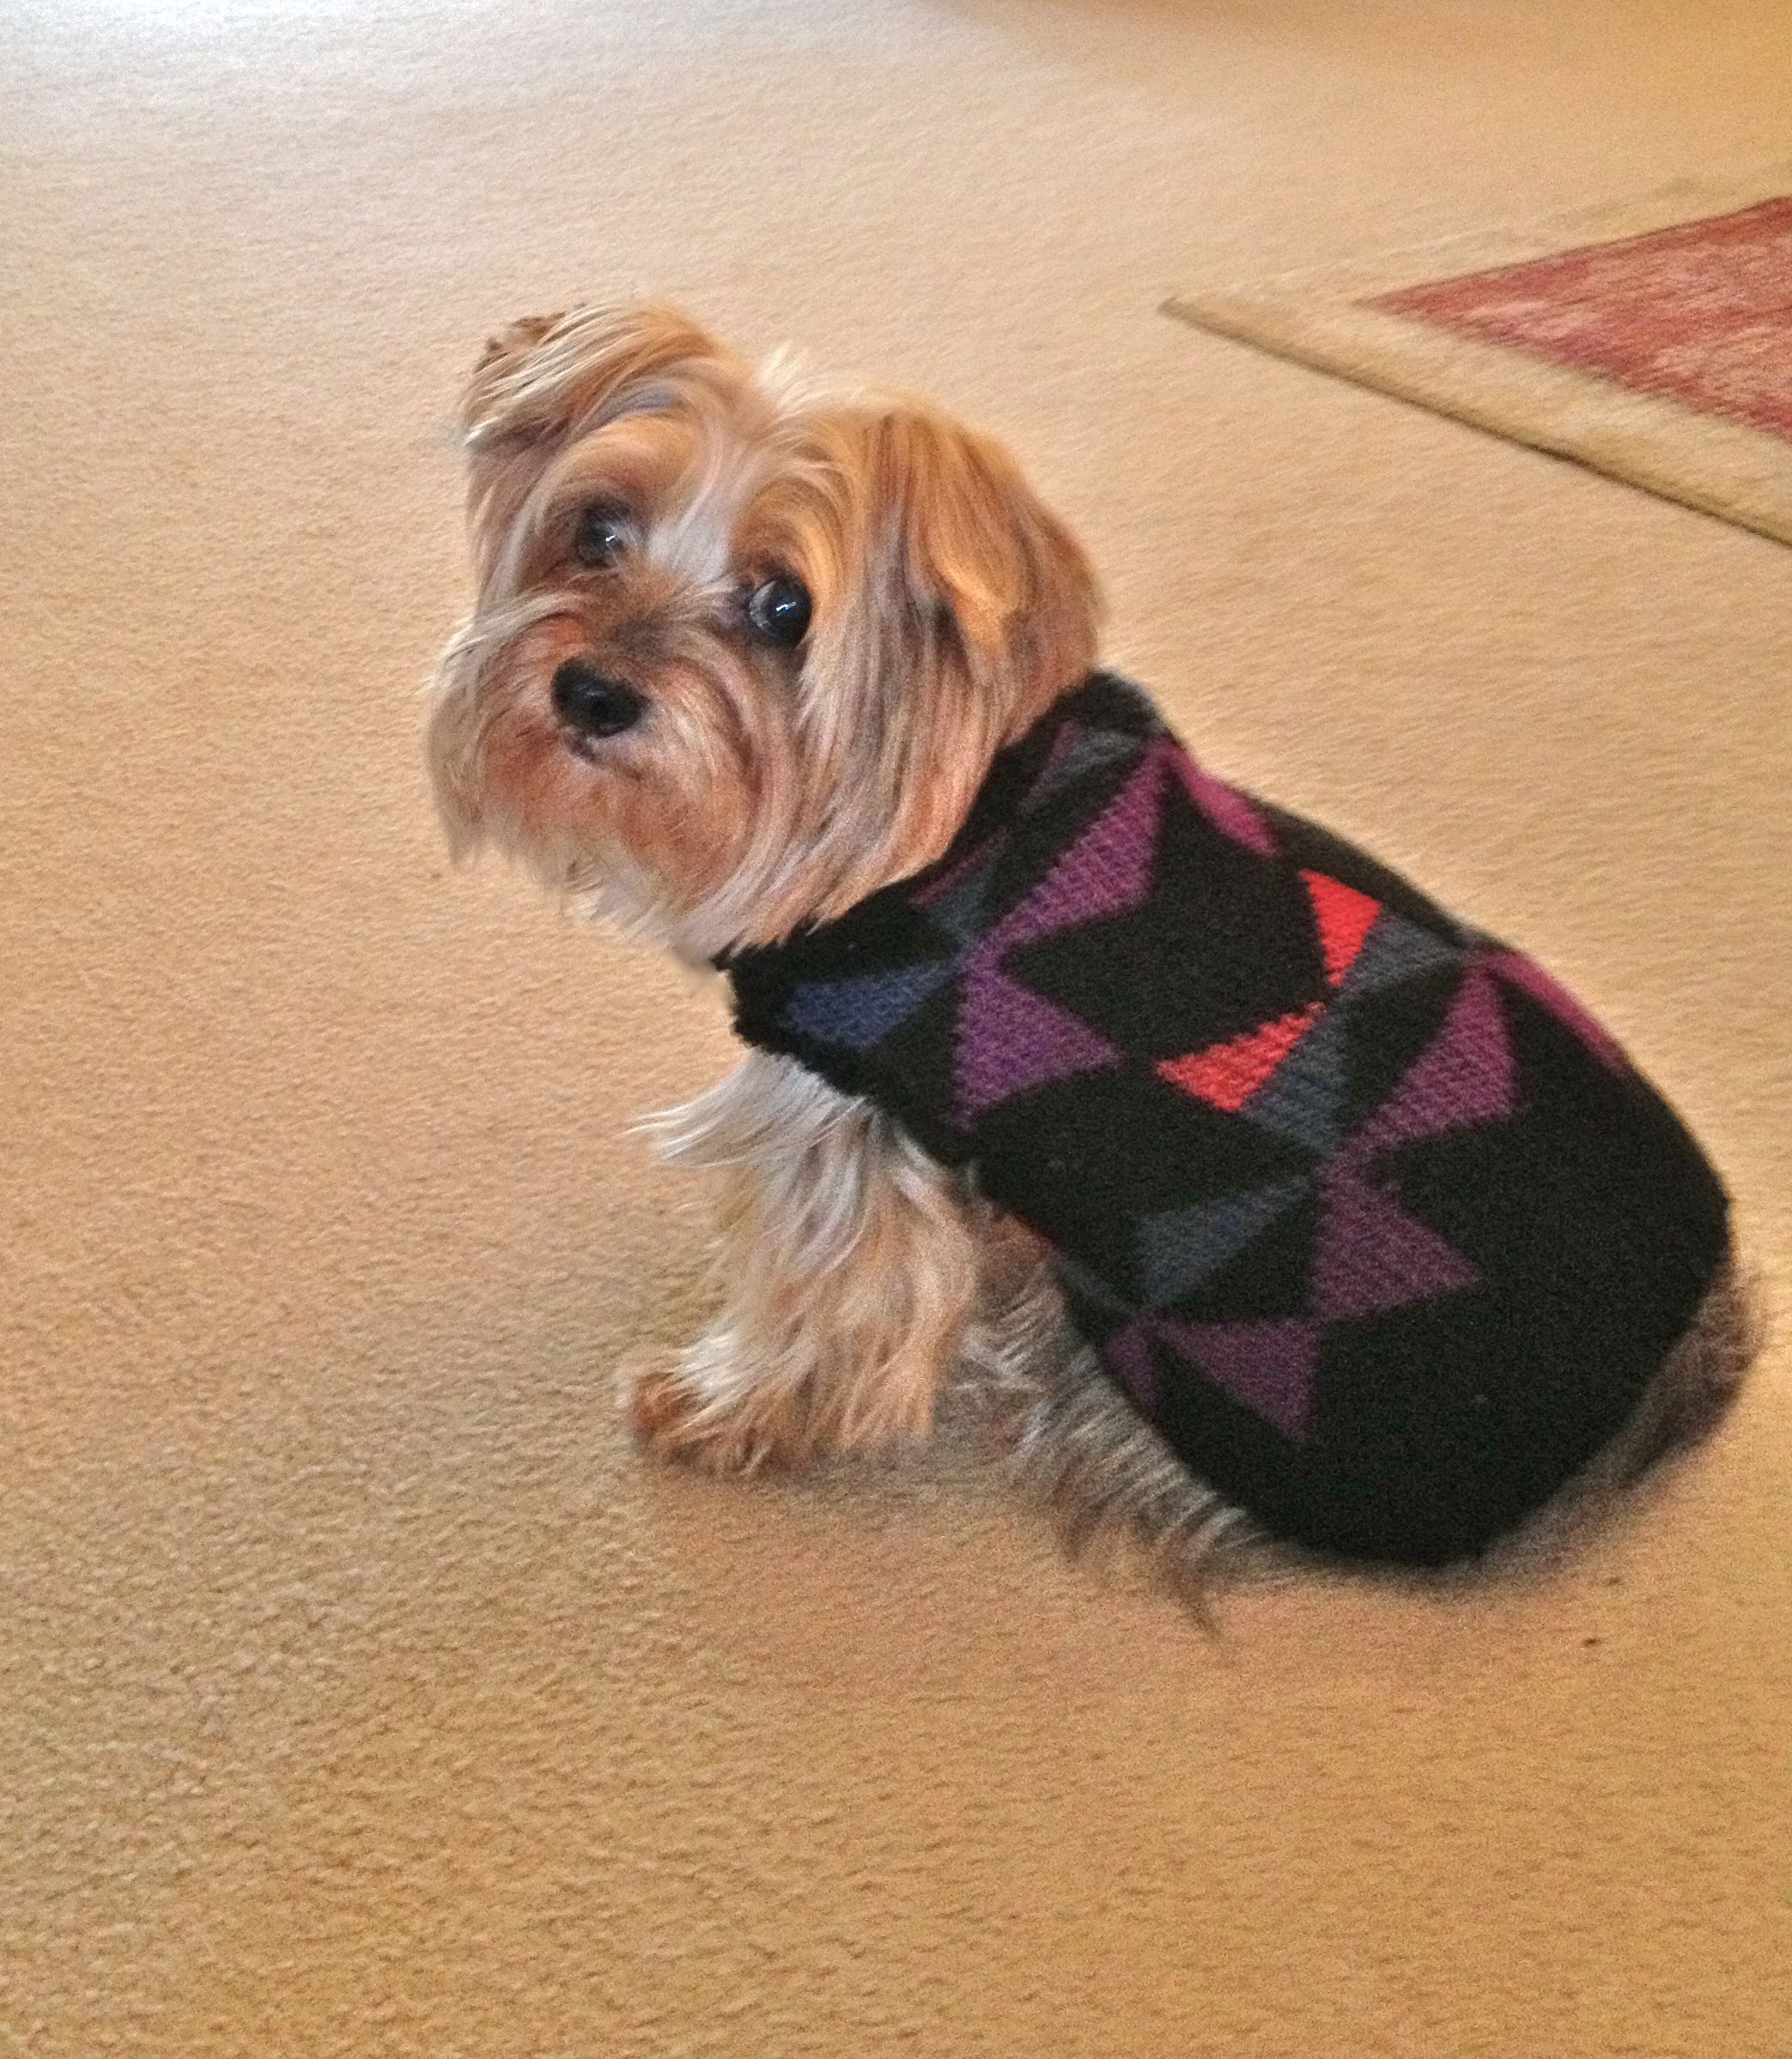 My homemade dog sweater. I cut off the sleeve of one of my husband's old sweaters, cut out two armholes. and after that I turned up the cuff of the sweater sleeve to make a turtleneck. The boy dog sweaters might need a little trimming on the underside so they don't get it wet. These are so easy and no sewing involved